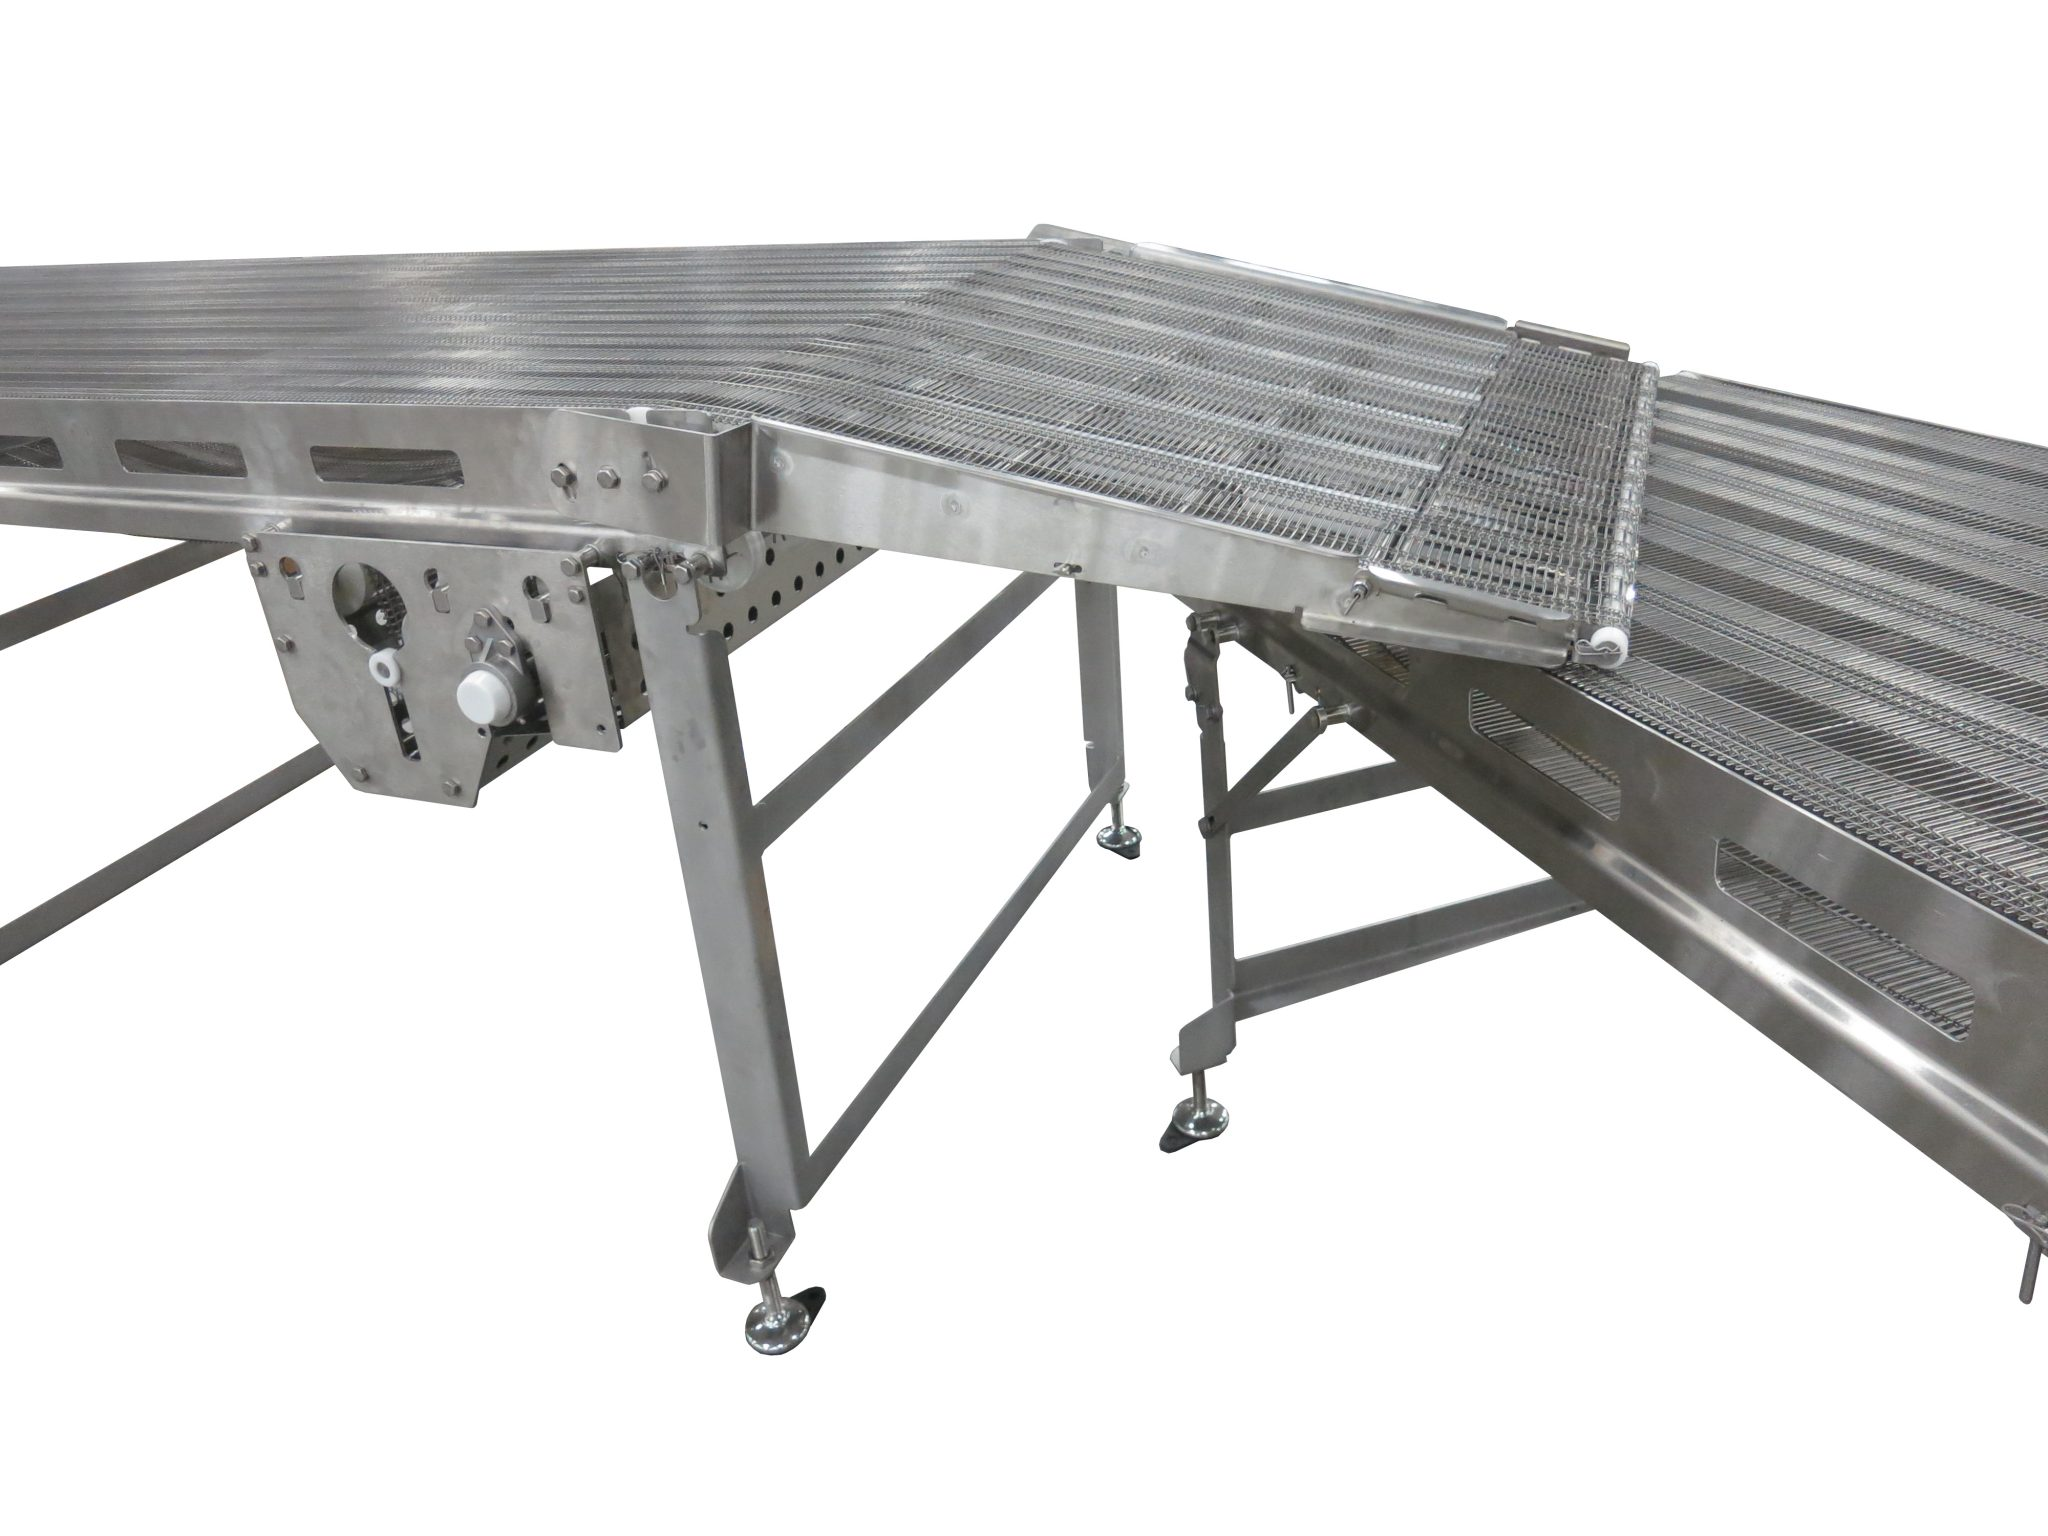 Dorner Conveyors Wire Belts for Extreme Temperatures